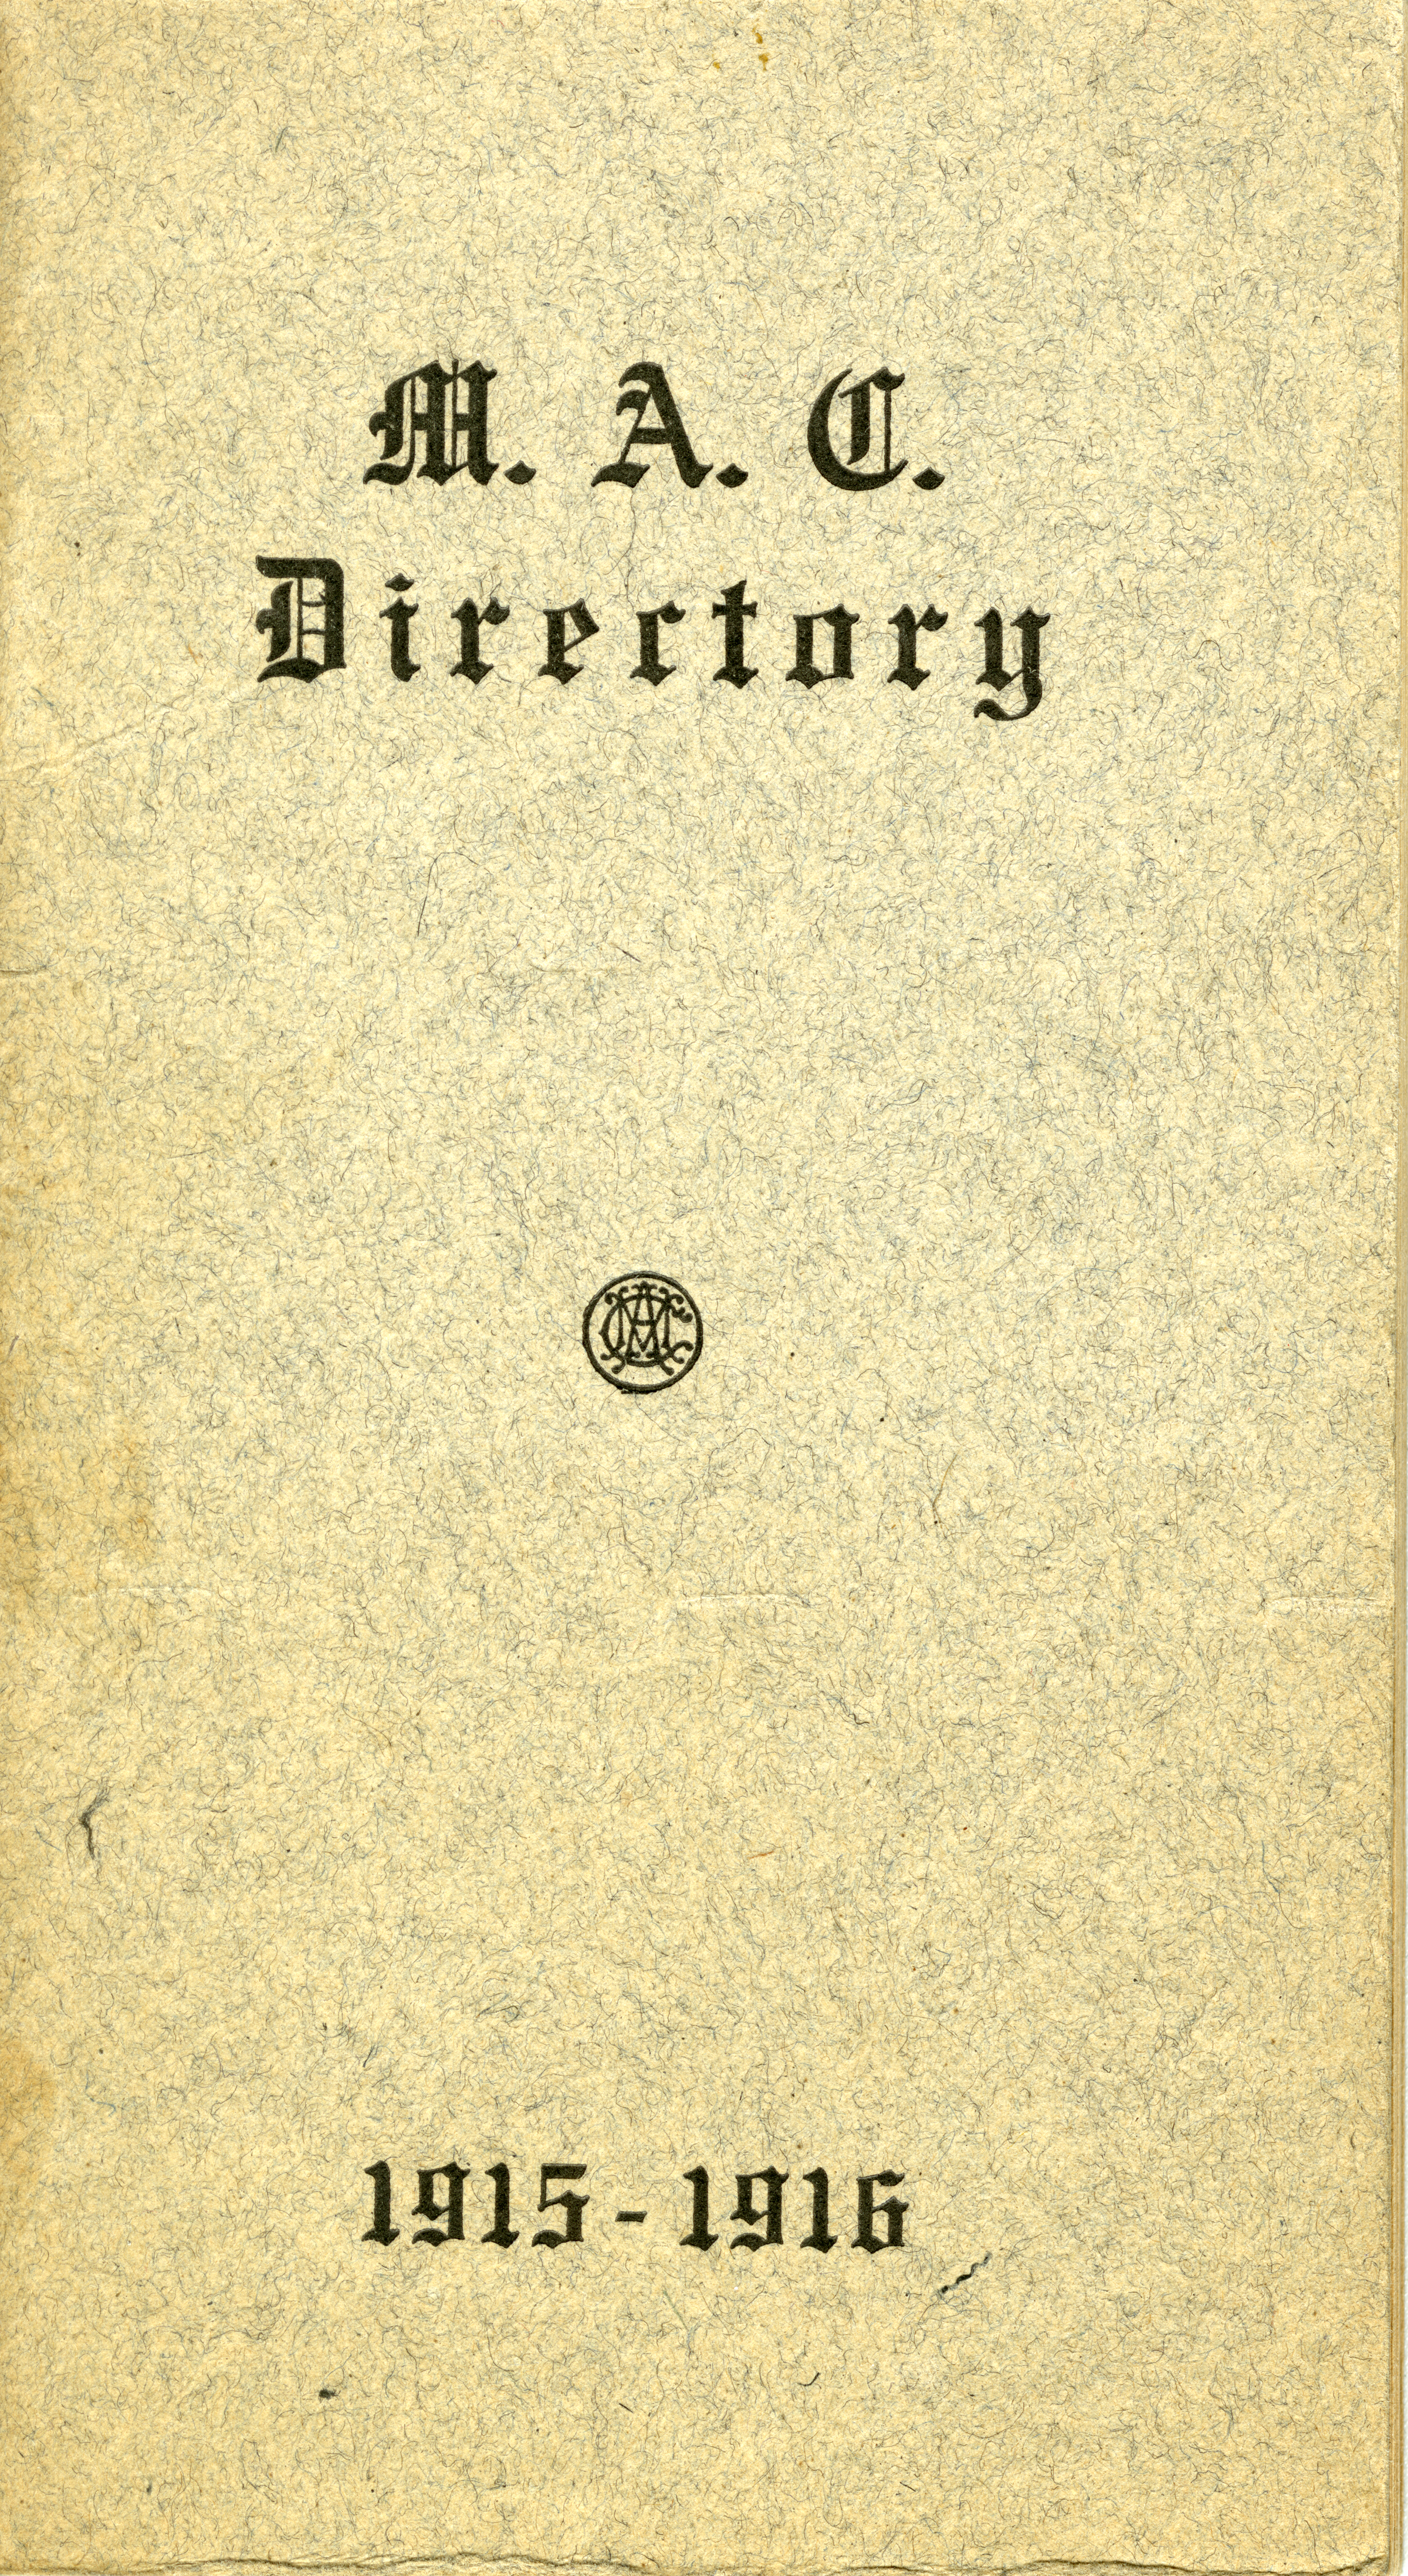 1915-1916 Michigan Agricultural College Faculty and Student Directory